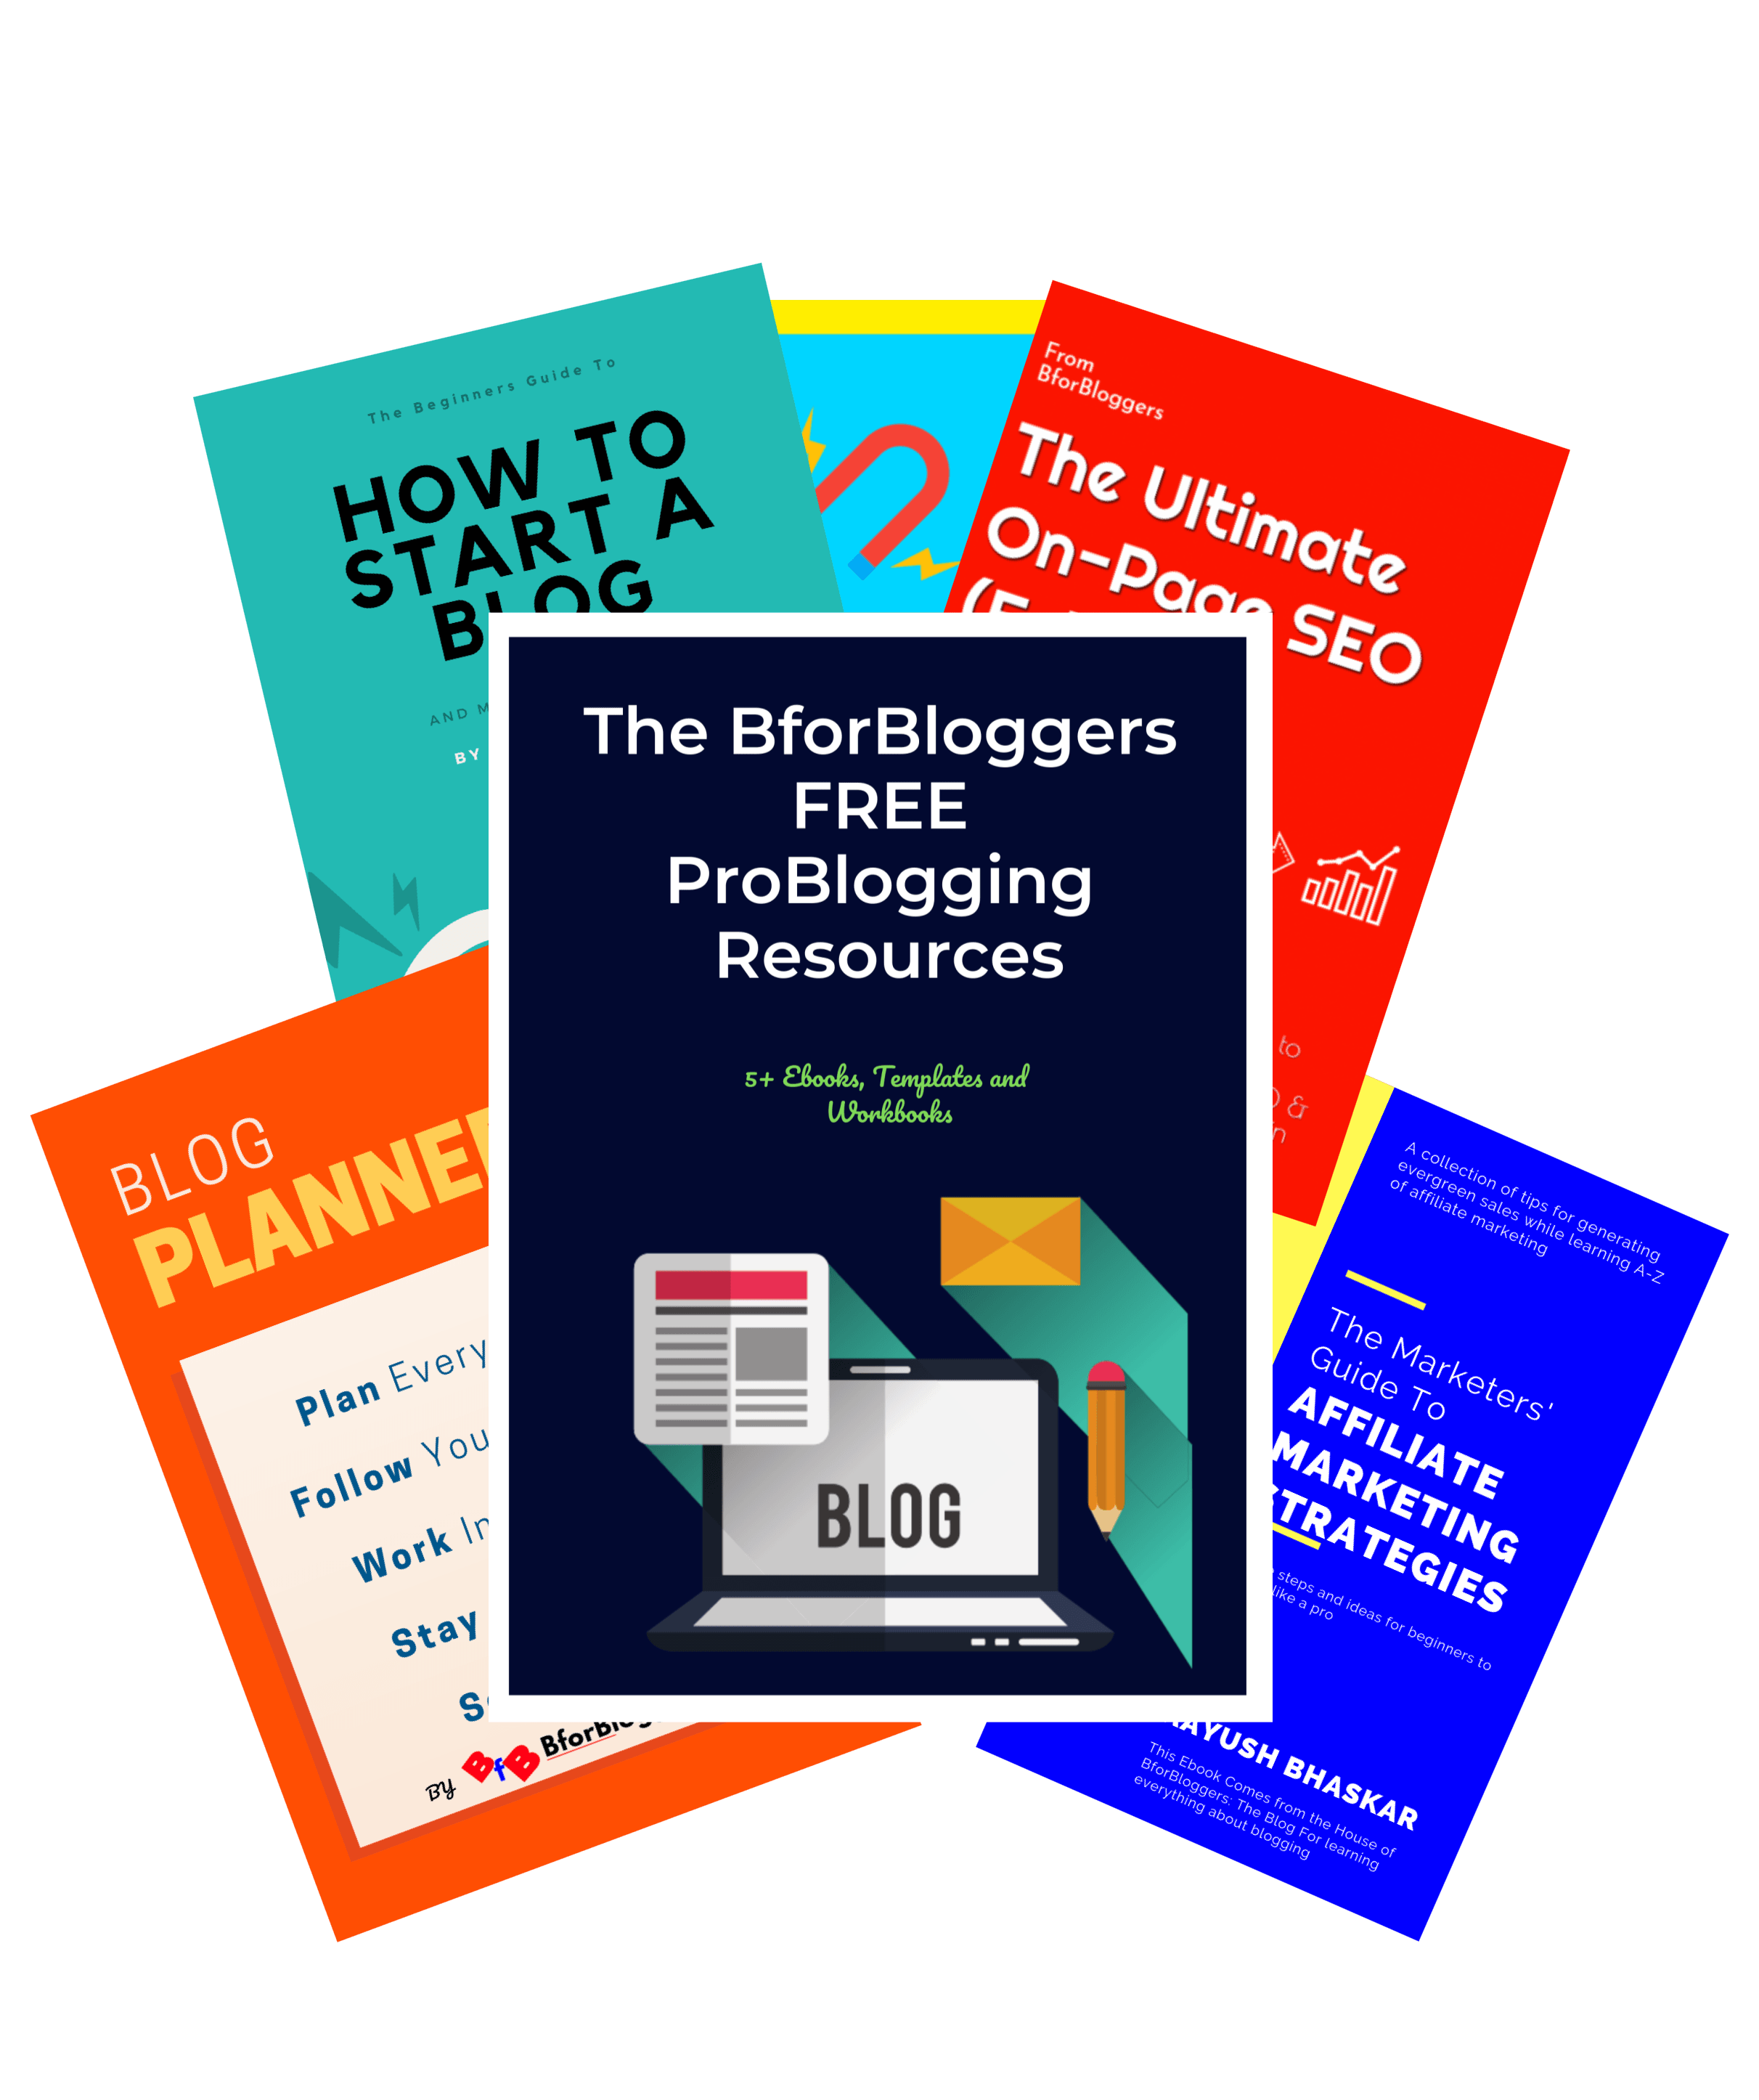 Bforbloggers-resources-1